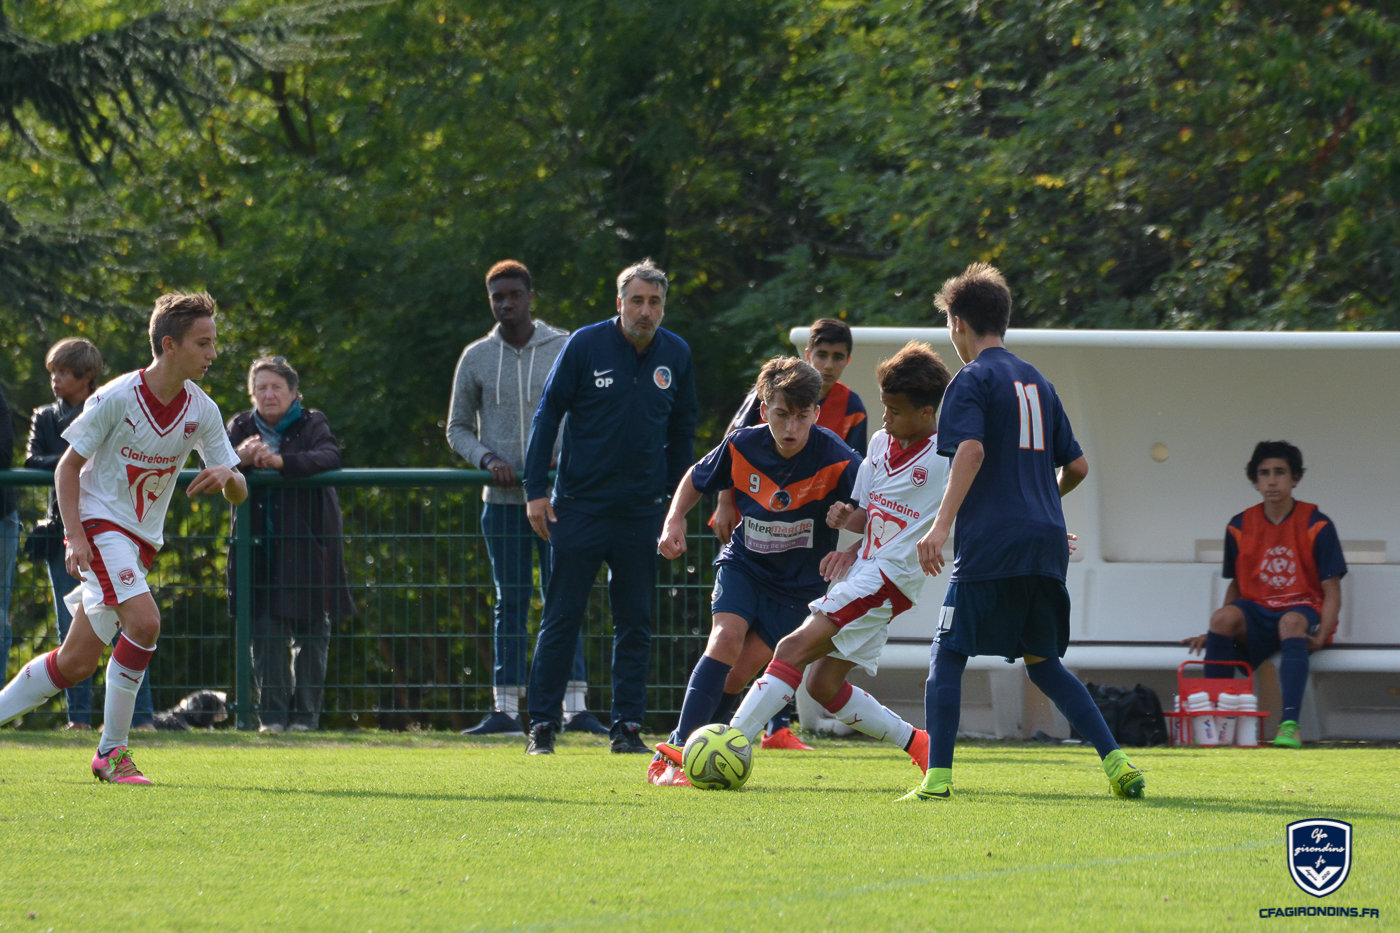 Cfa Girondins : Une victoire pour finir (1-5) - Formation Girondins